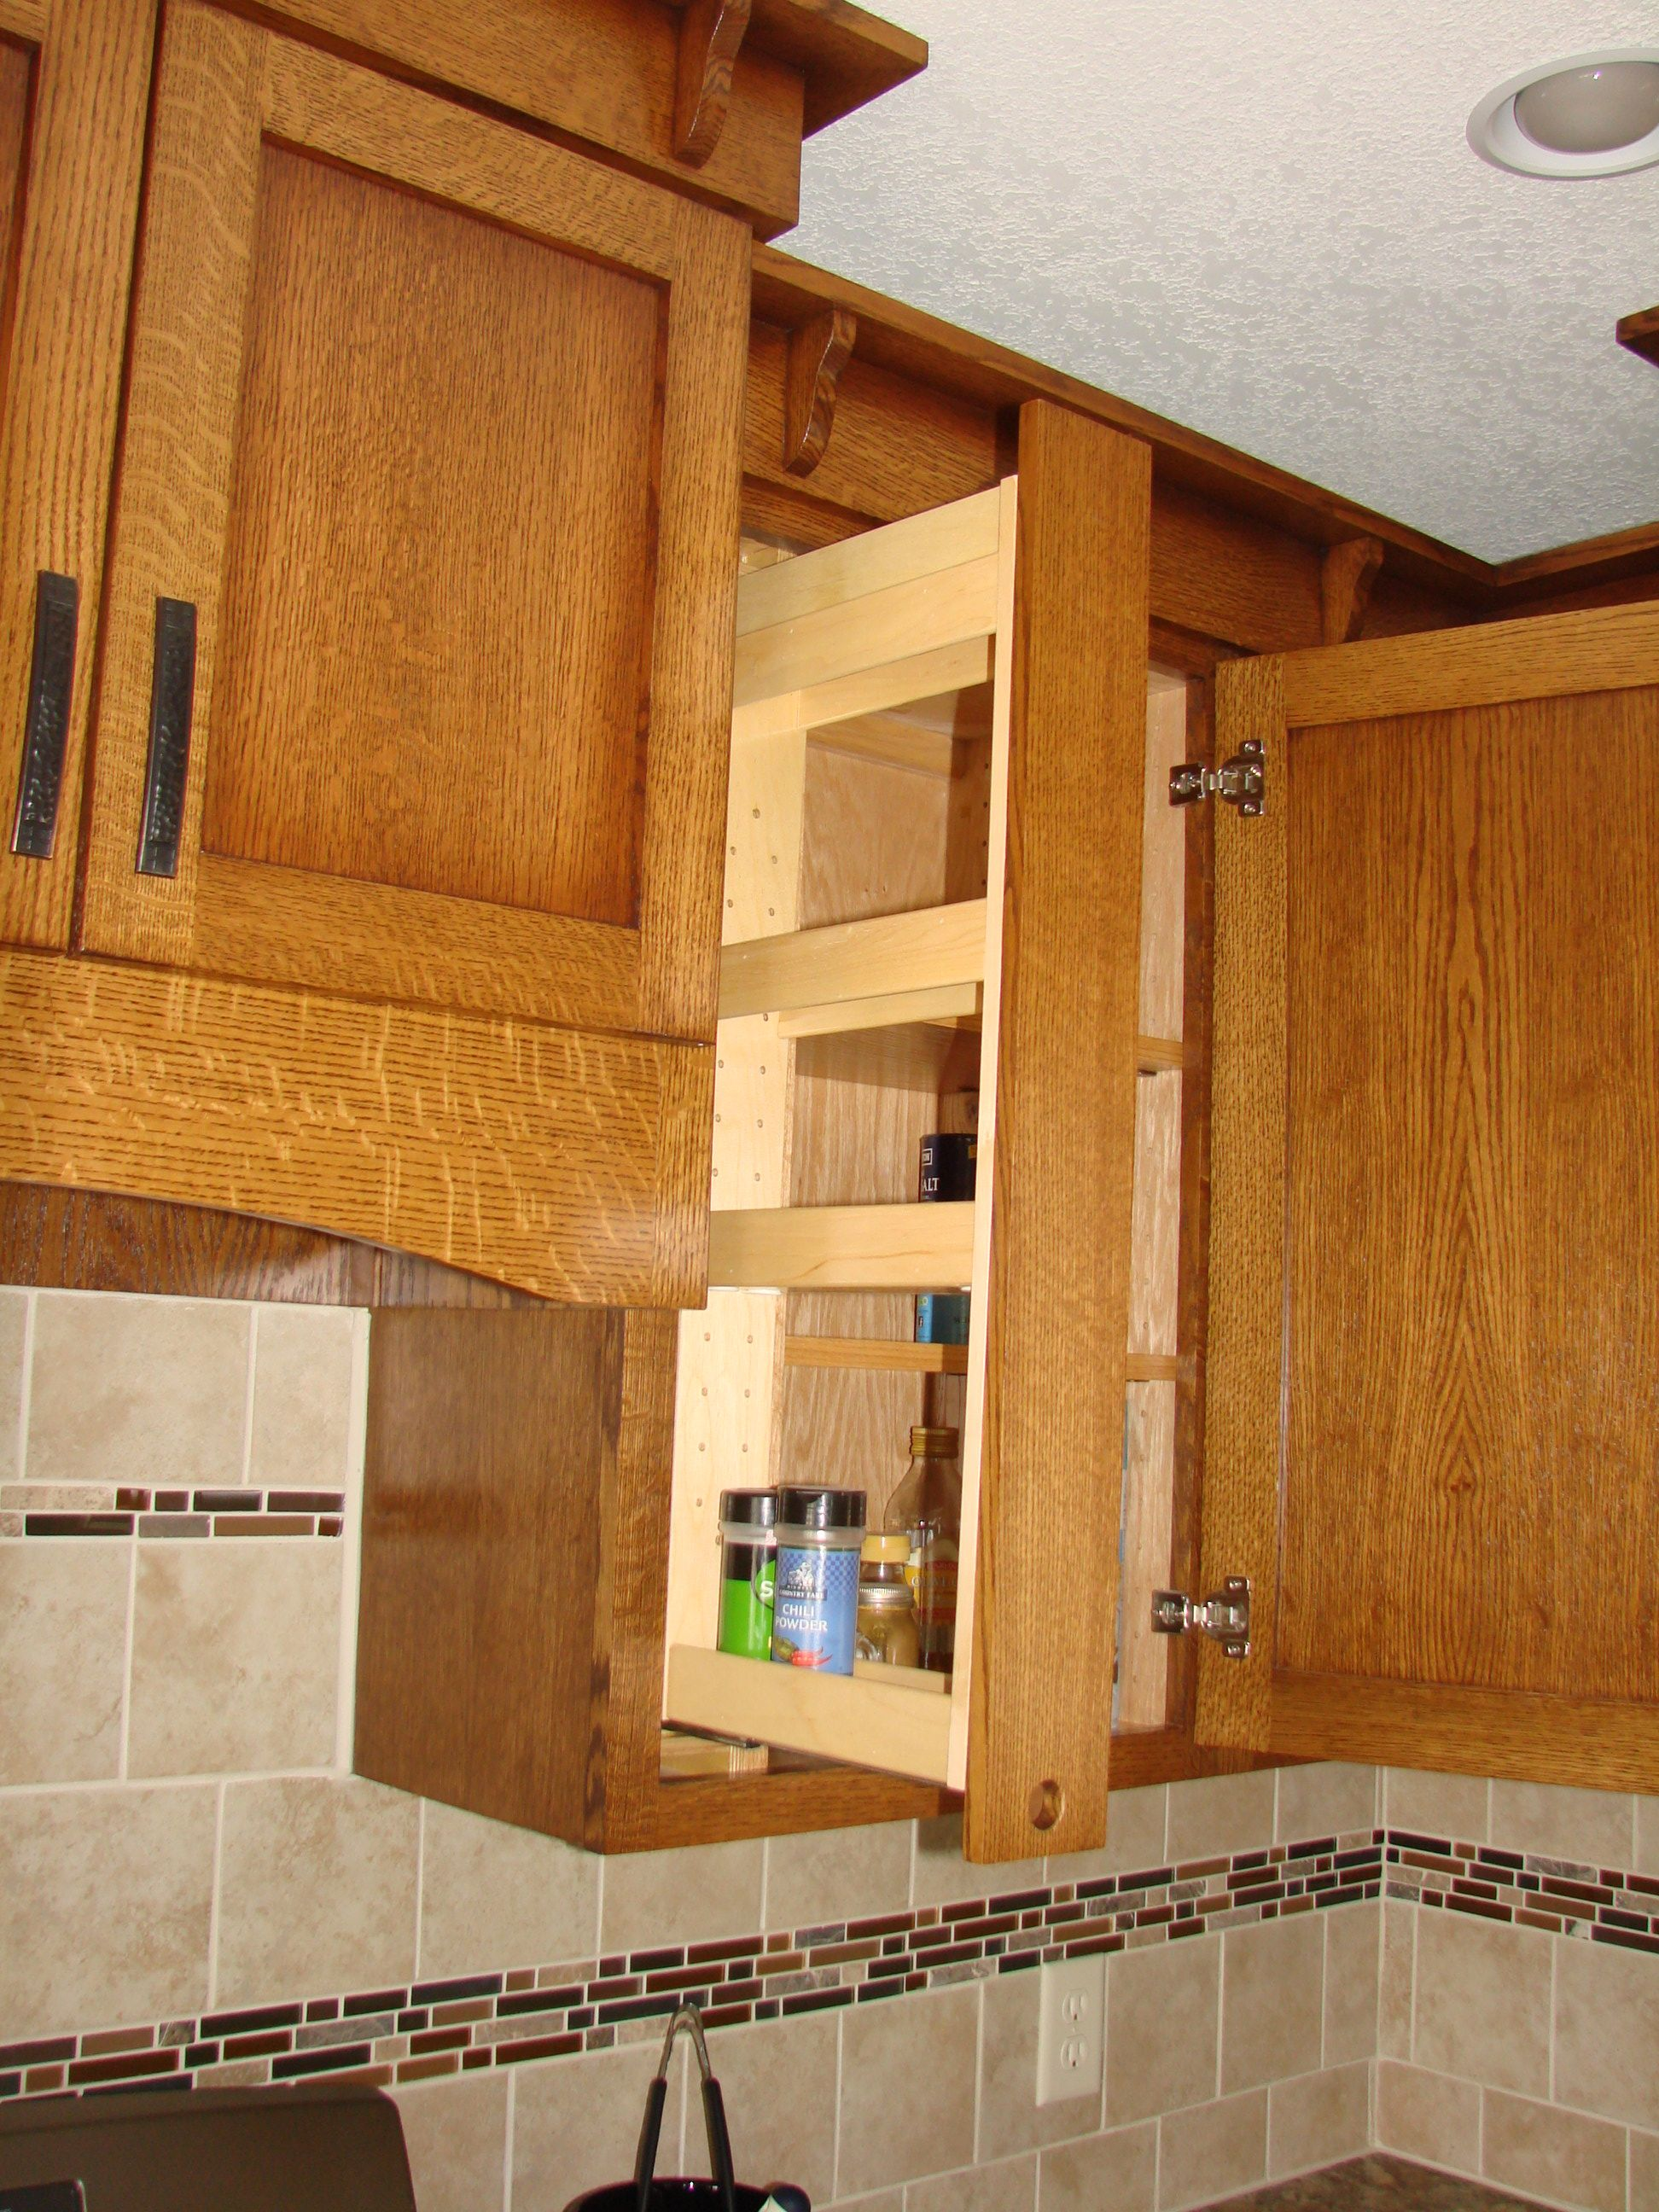 Exceptionnel Quartersawn Oak Upper Cabinet Pull Out Spice Rack